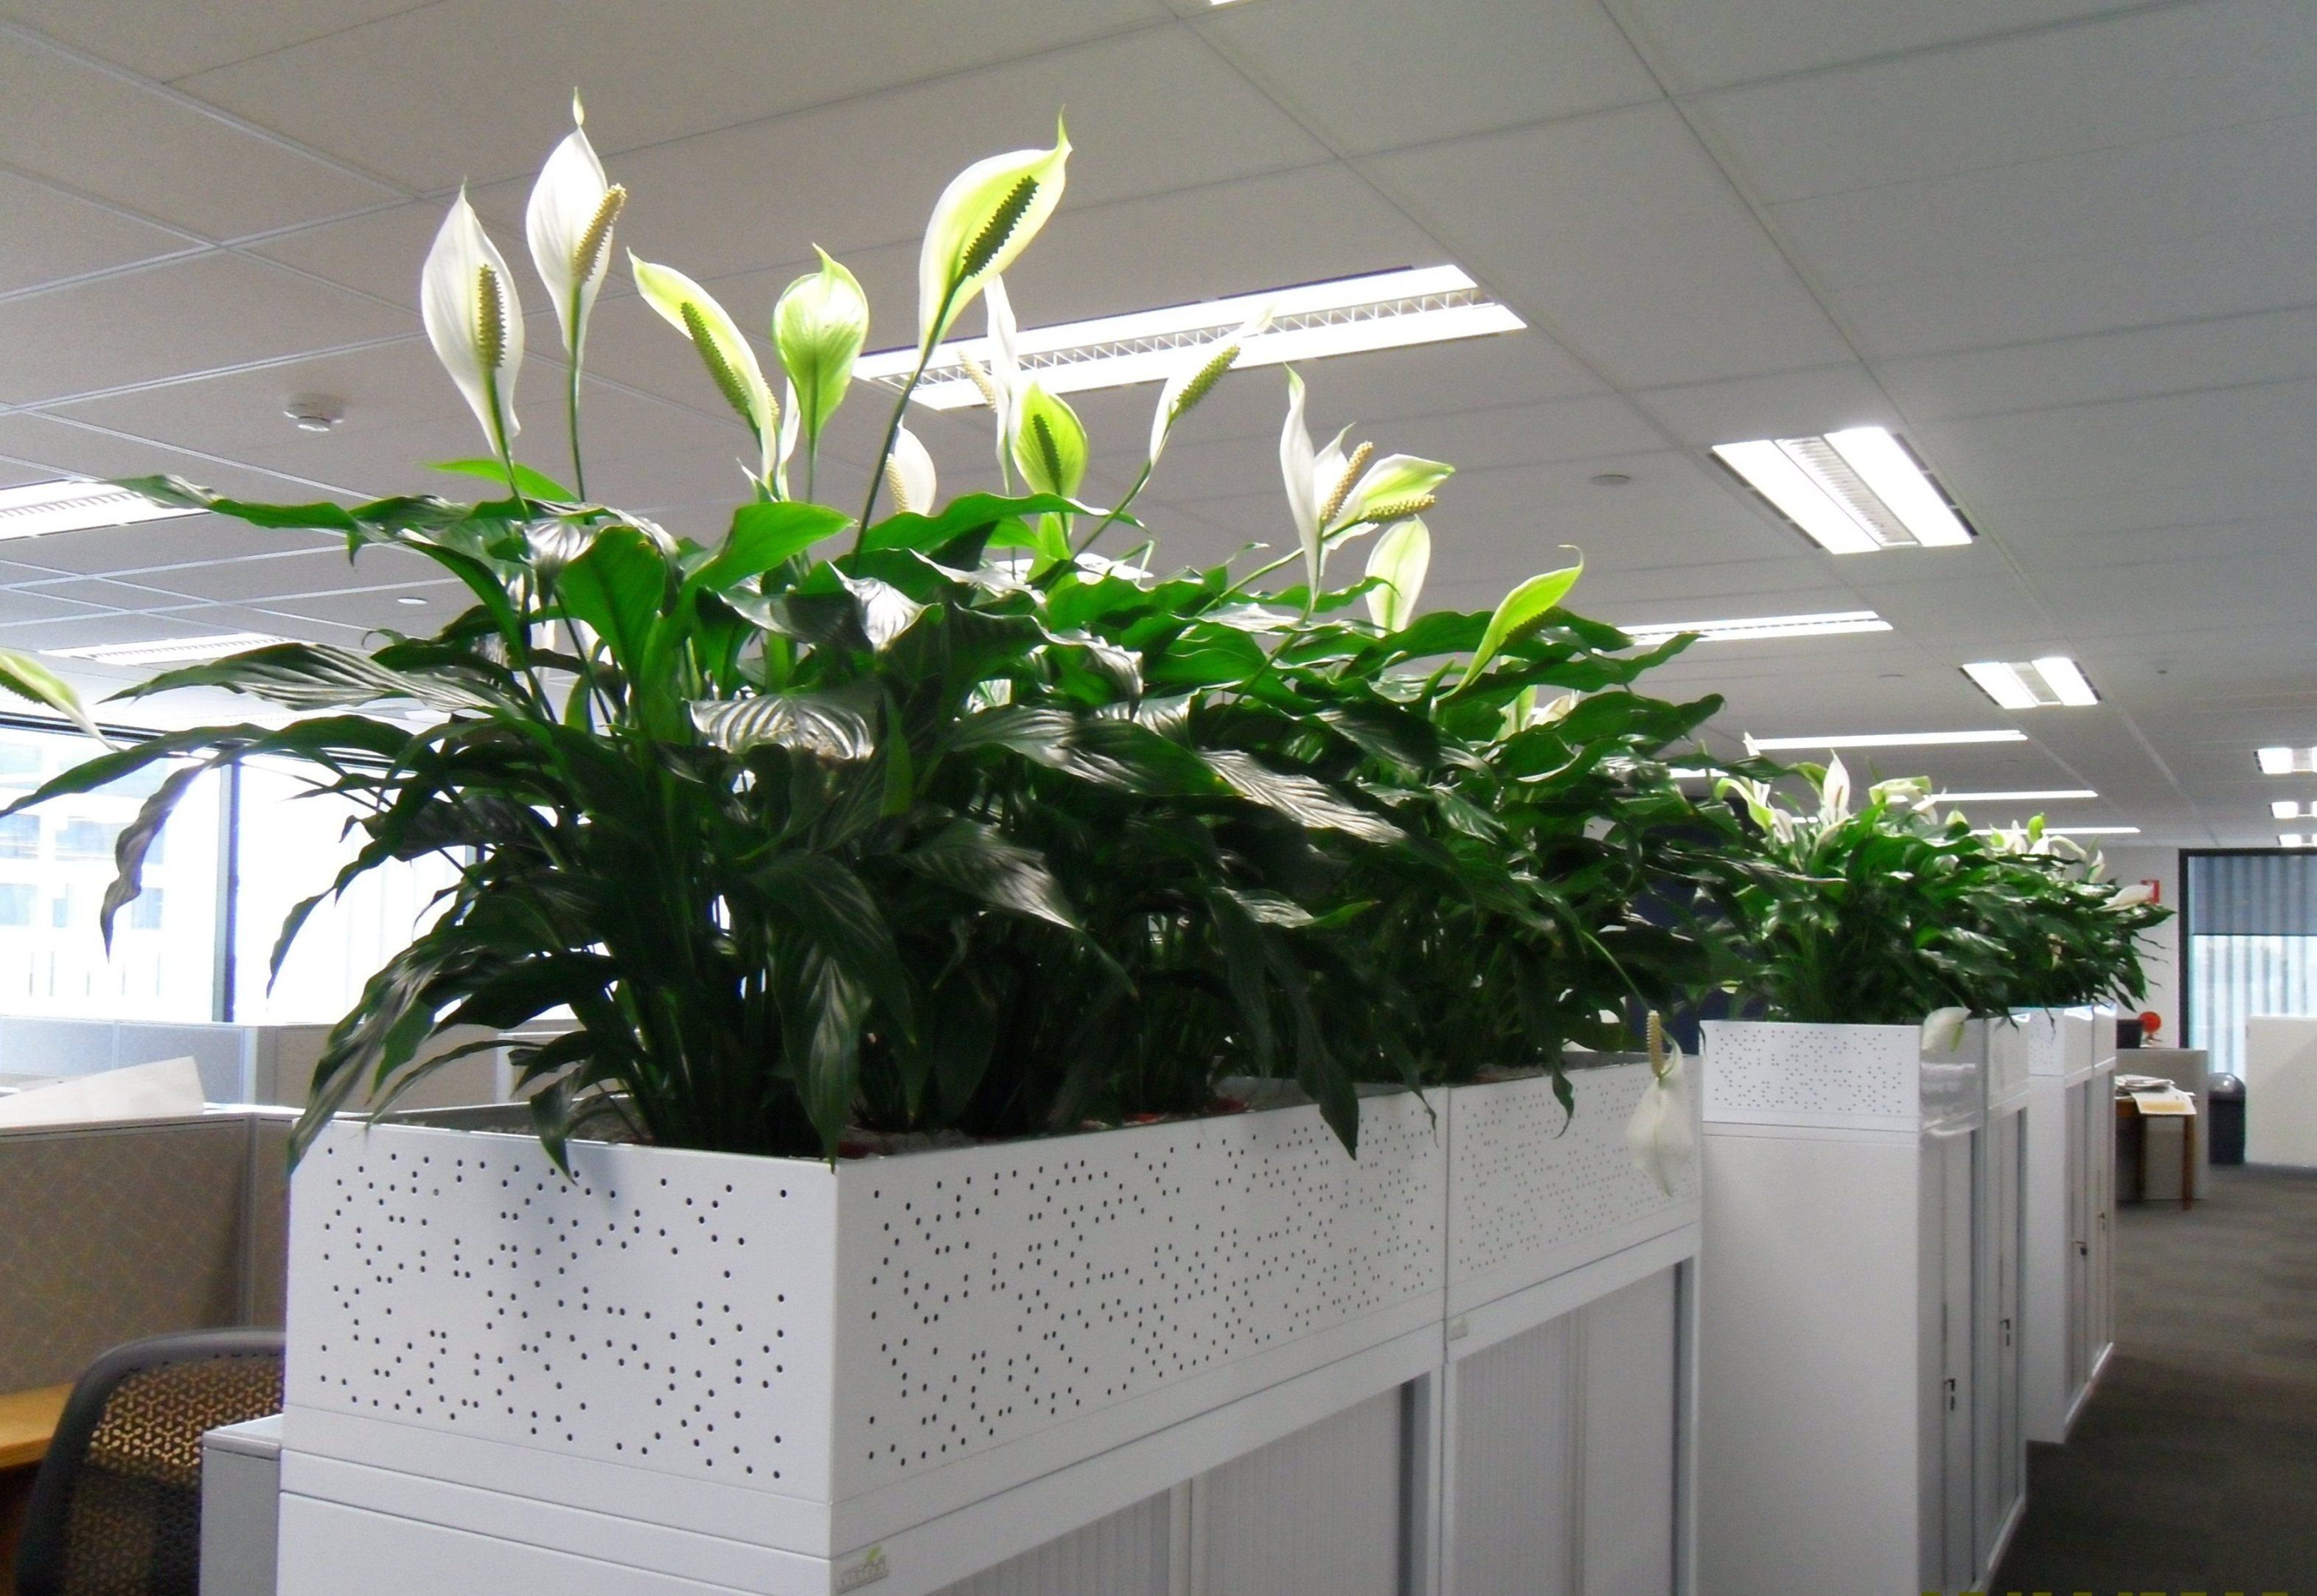 Plant Interior Keeping Plants In The Office Can Help Clean The Air And